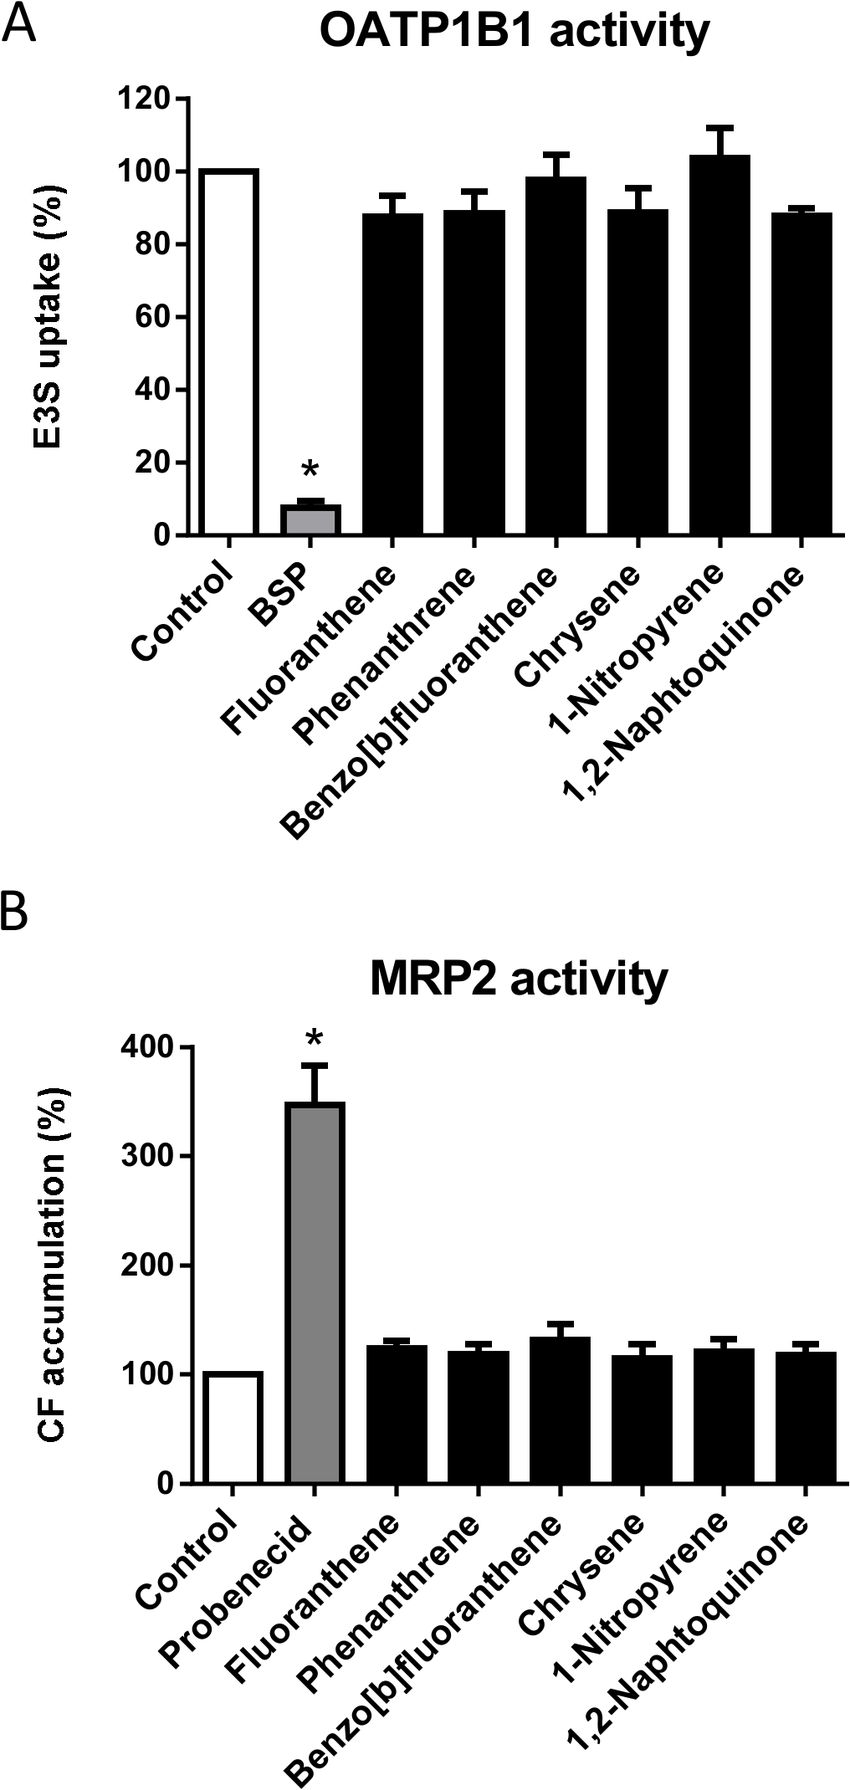 medium resolution of effects of various depe contained pahs on oatp1b1 and mrp2 activity a